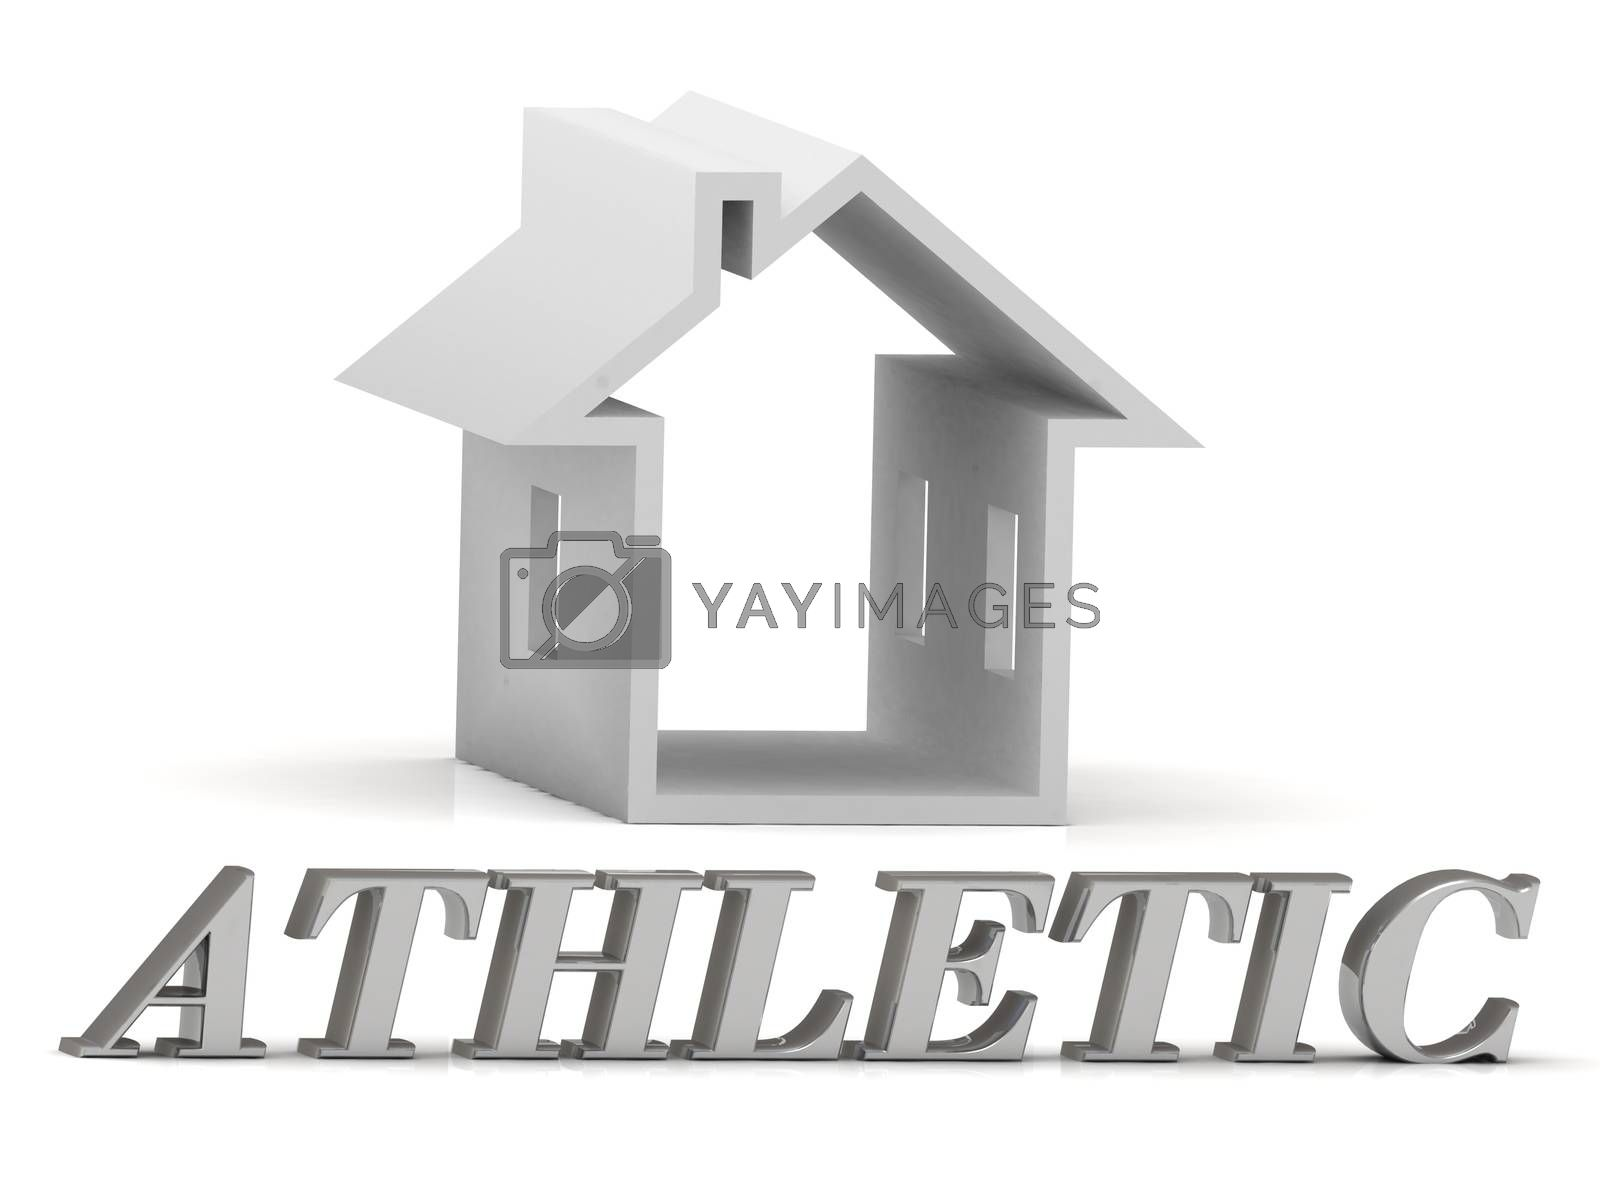 ATHLETIC- inscription of silver letters and white house on white background